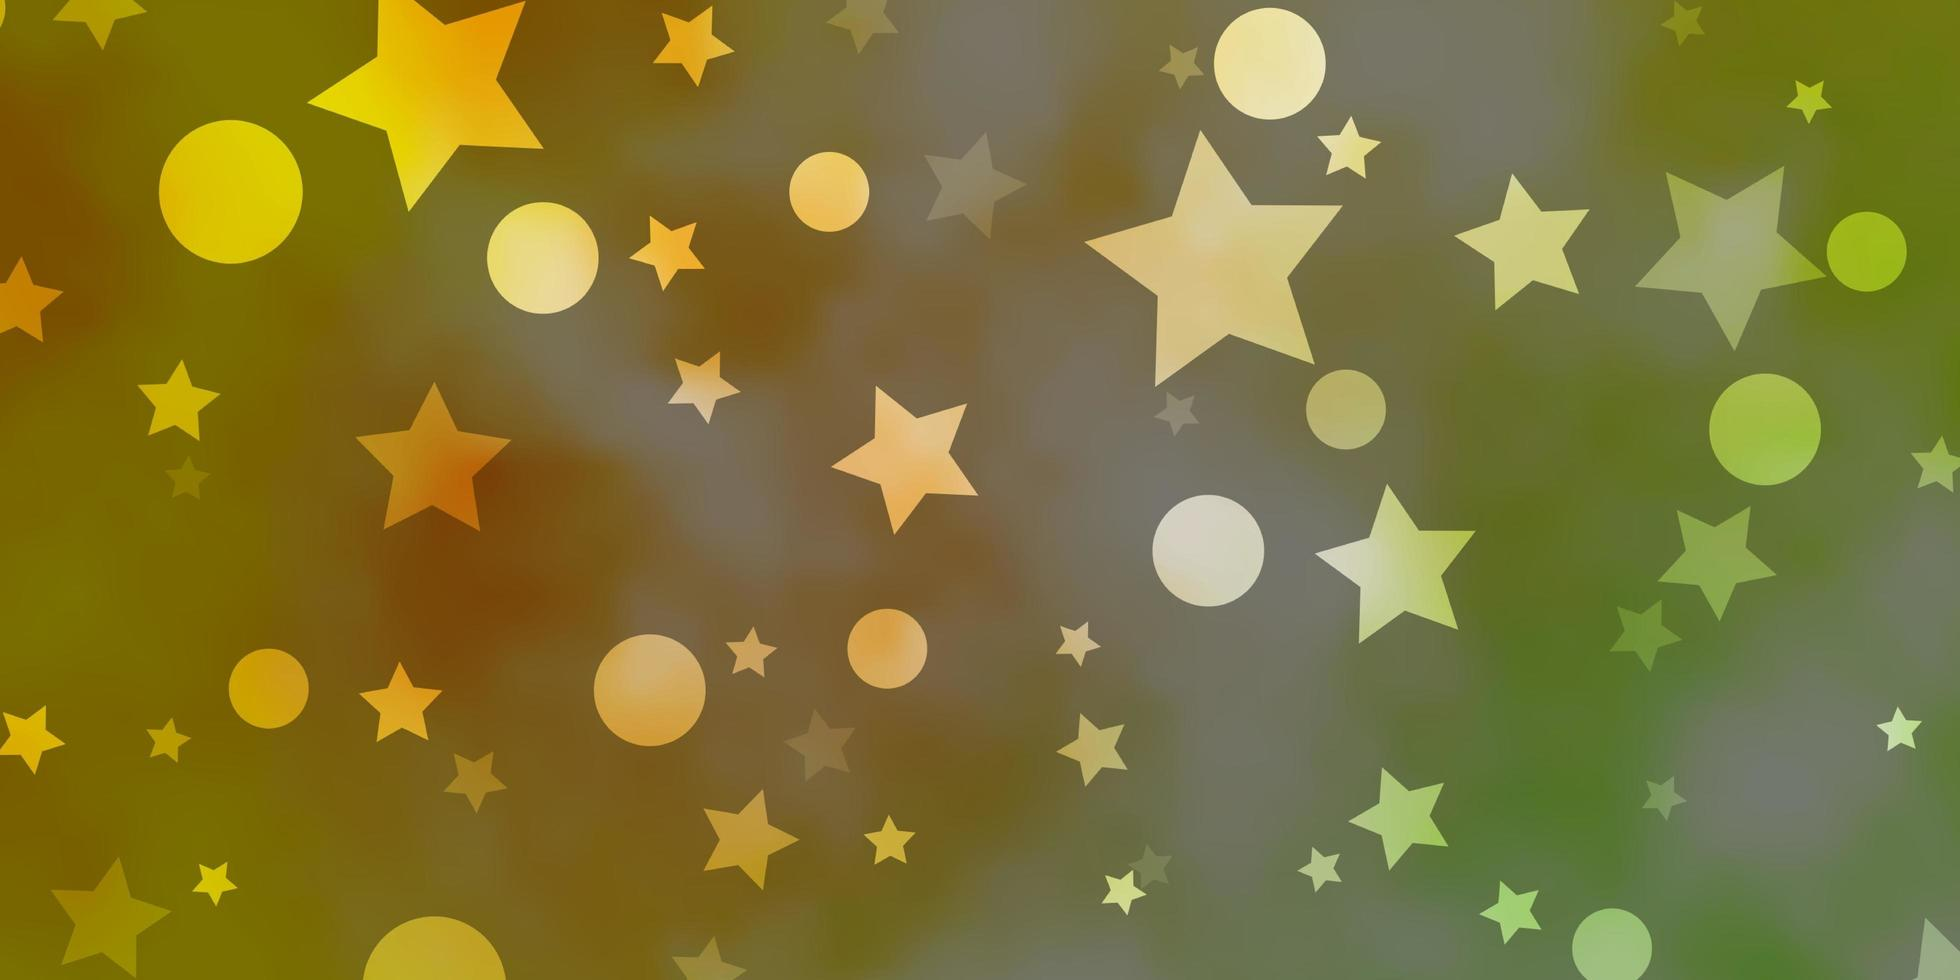 Light Green, Yellow background with circles, stars. vector